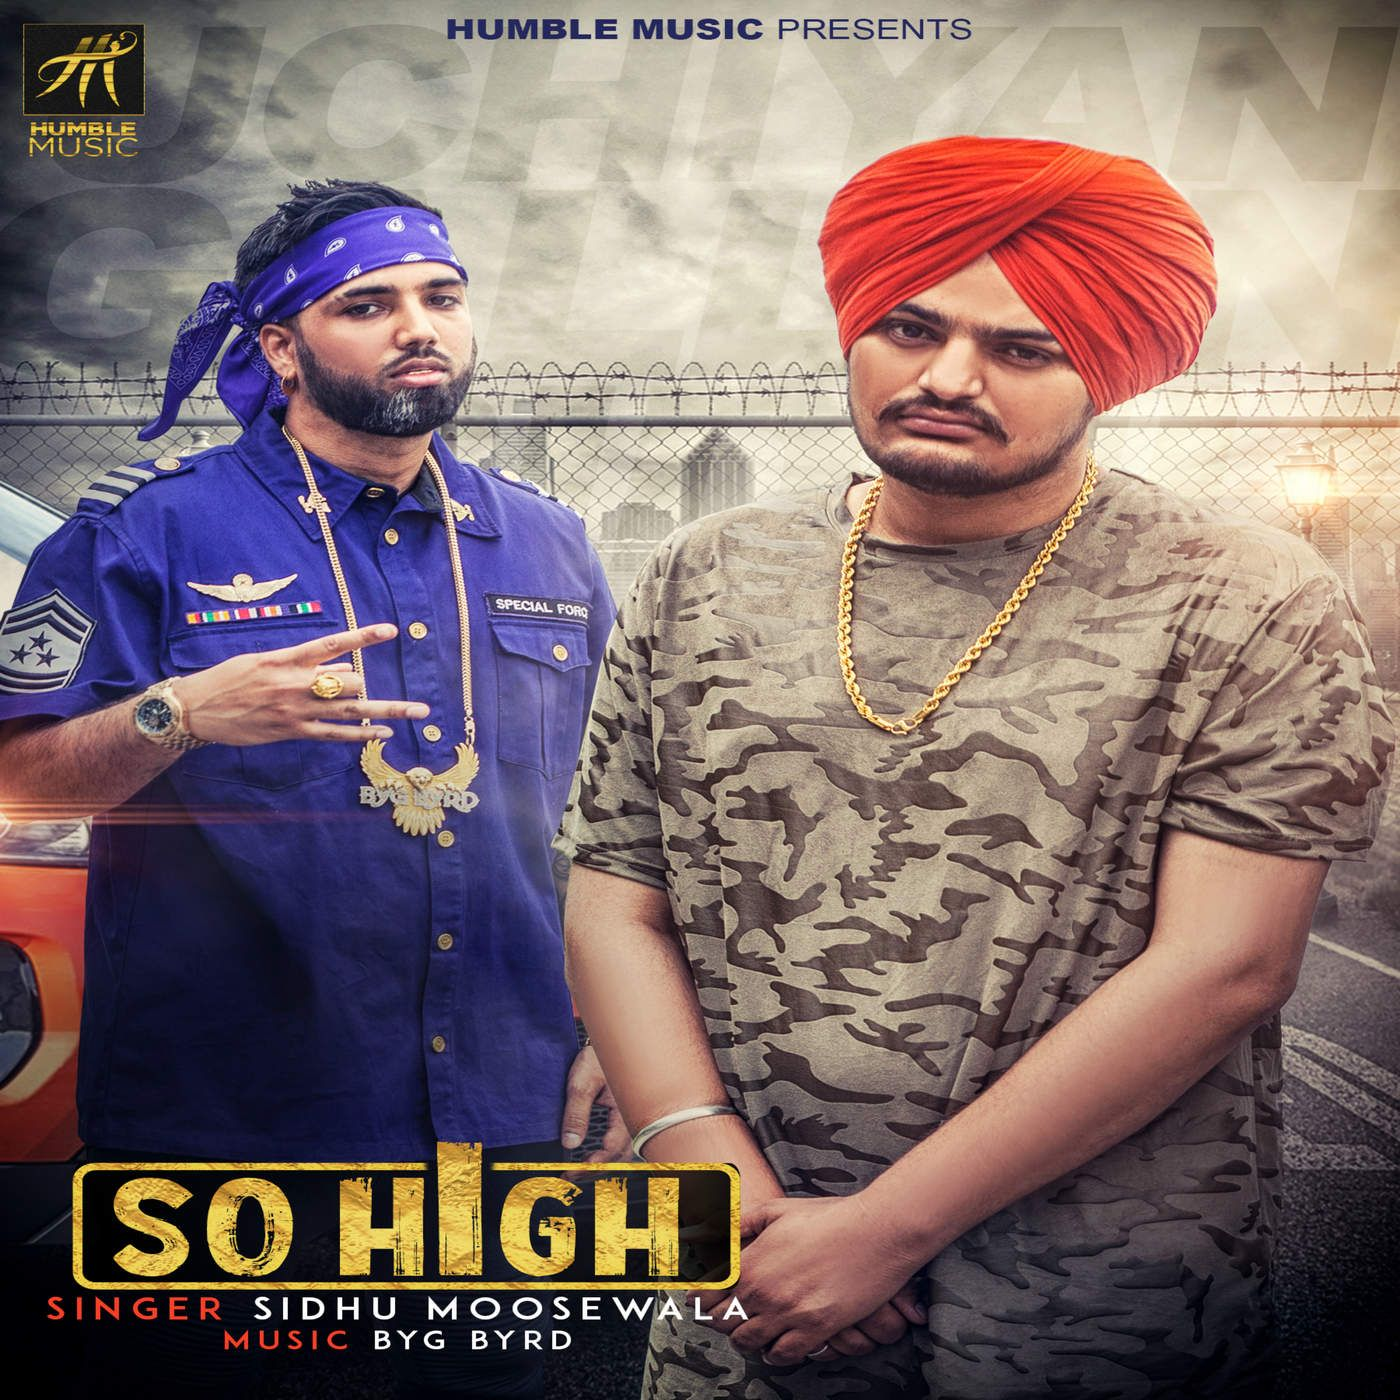 sidhu moose wala new song dollar hd video download